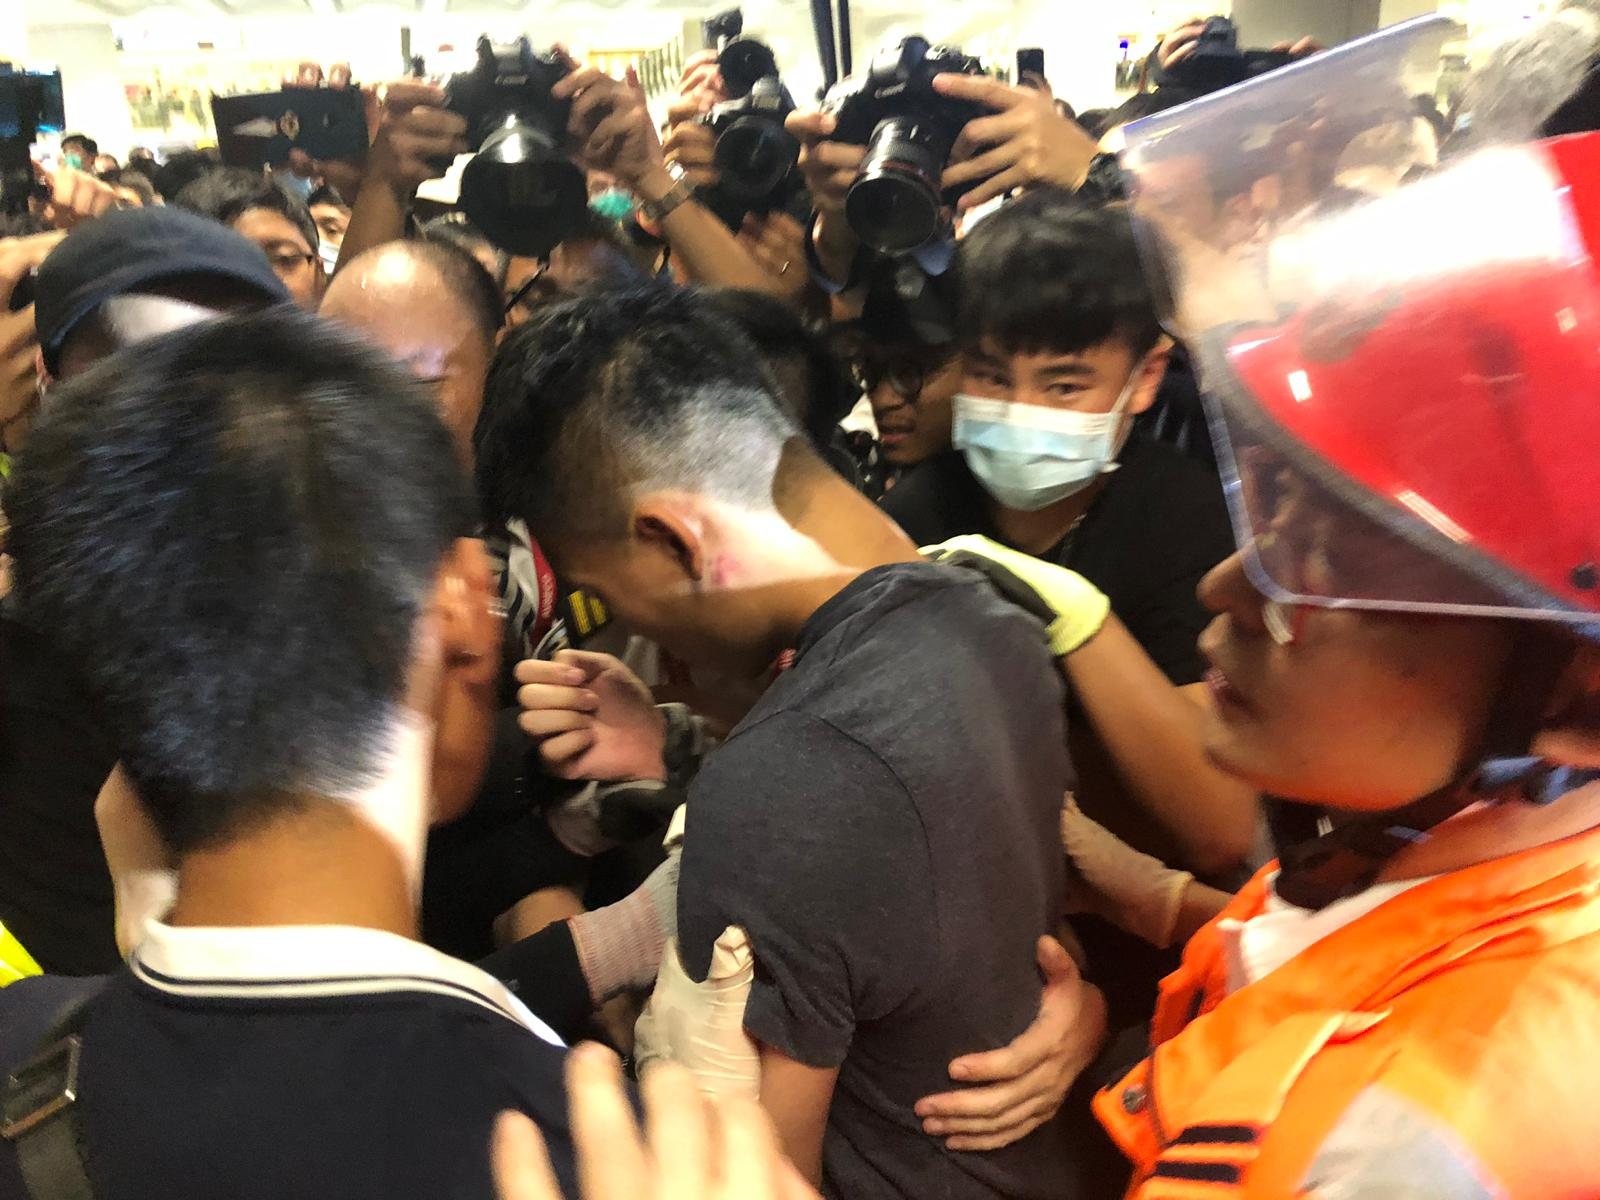 A man accused by protesters of being an undercover policeman has his hands zip-tied.